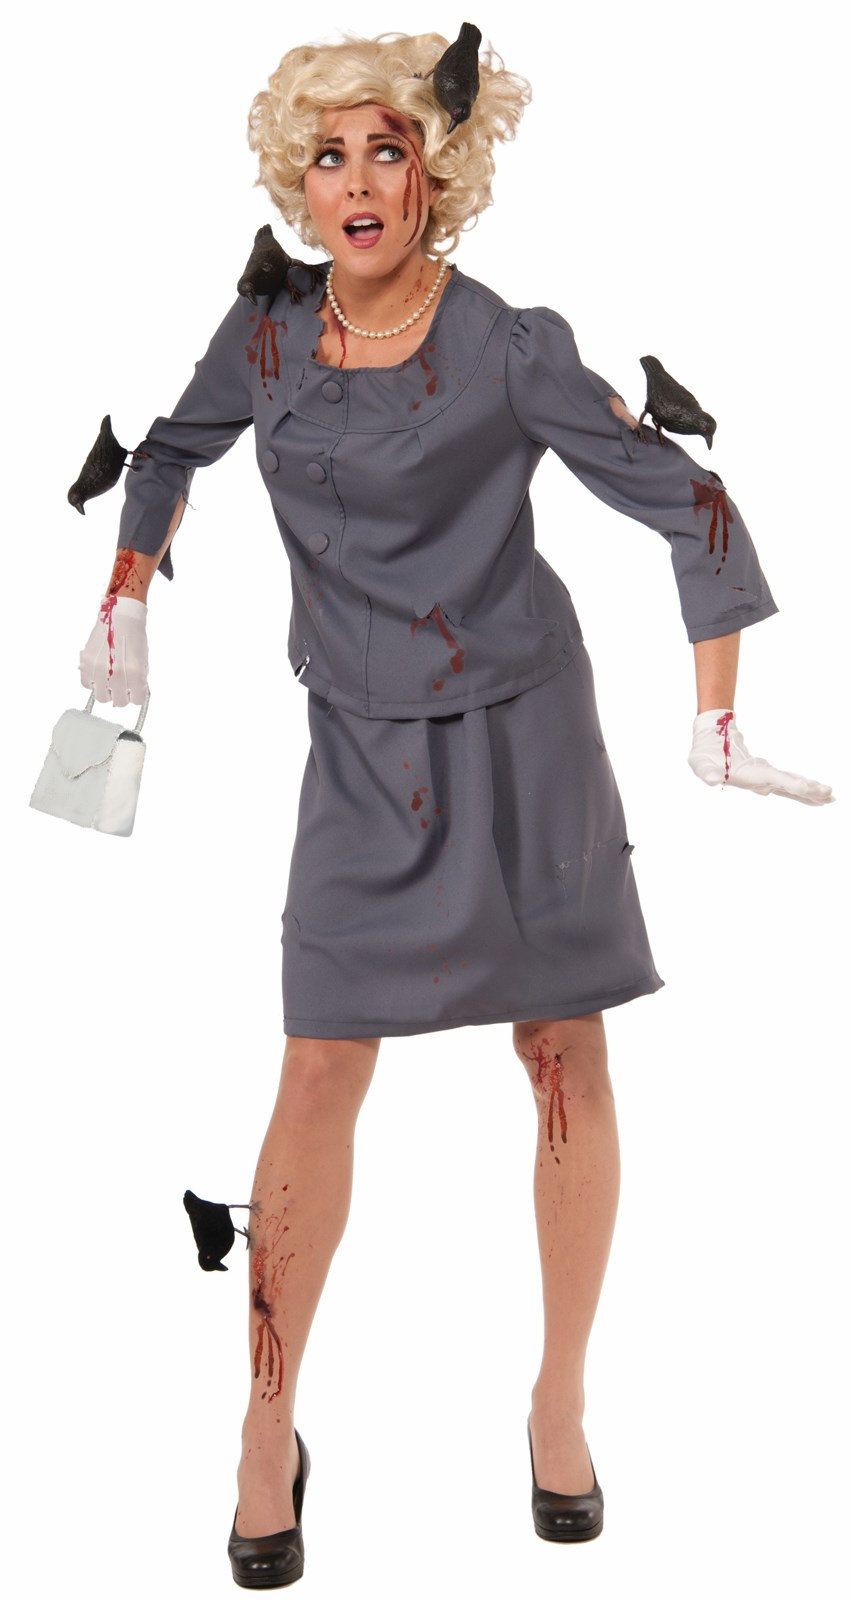 Bird Attack Costume for Adults | BuyCostumes.com